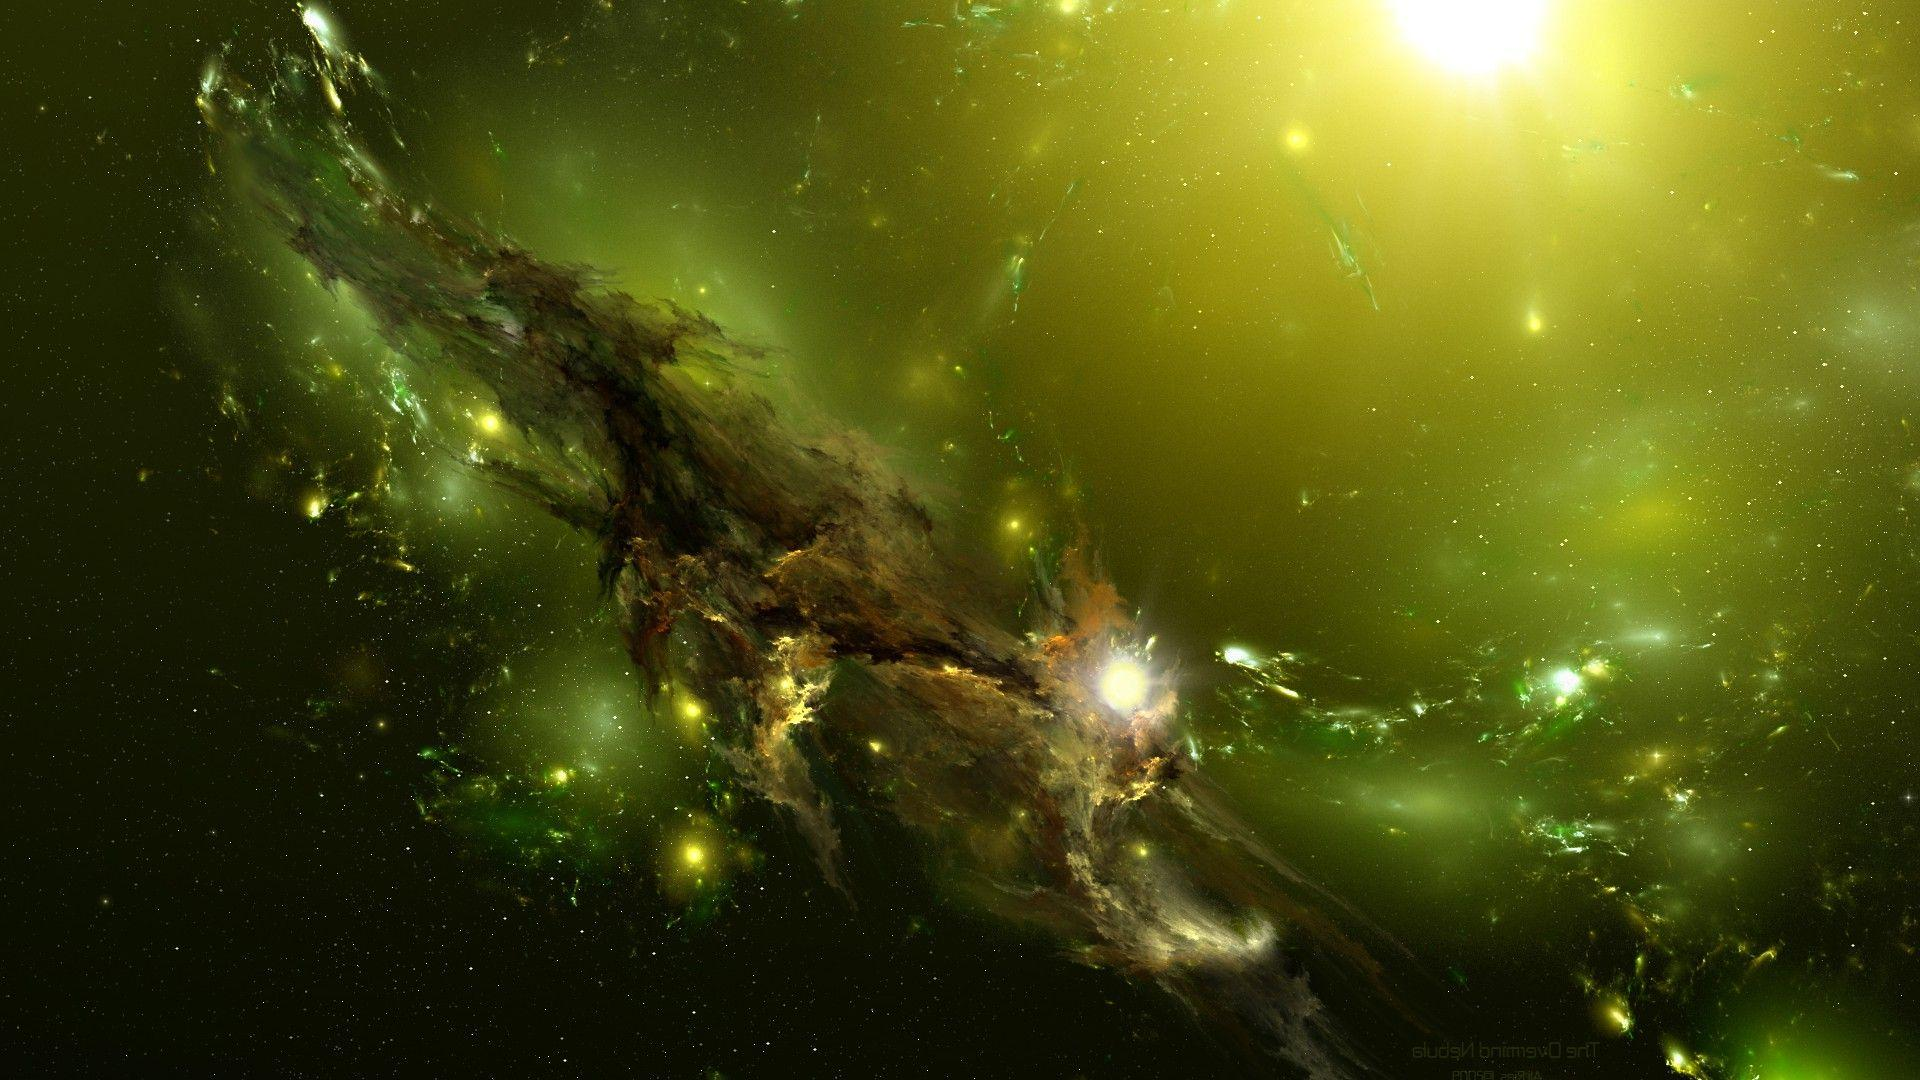 green high resolution nebula wallpaper - photo #22